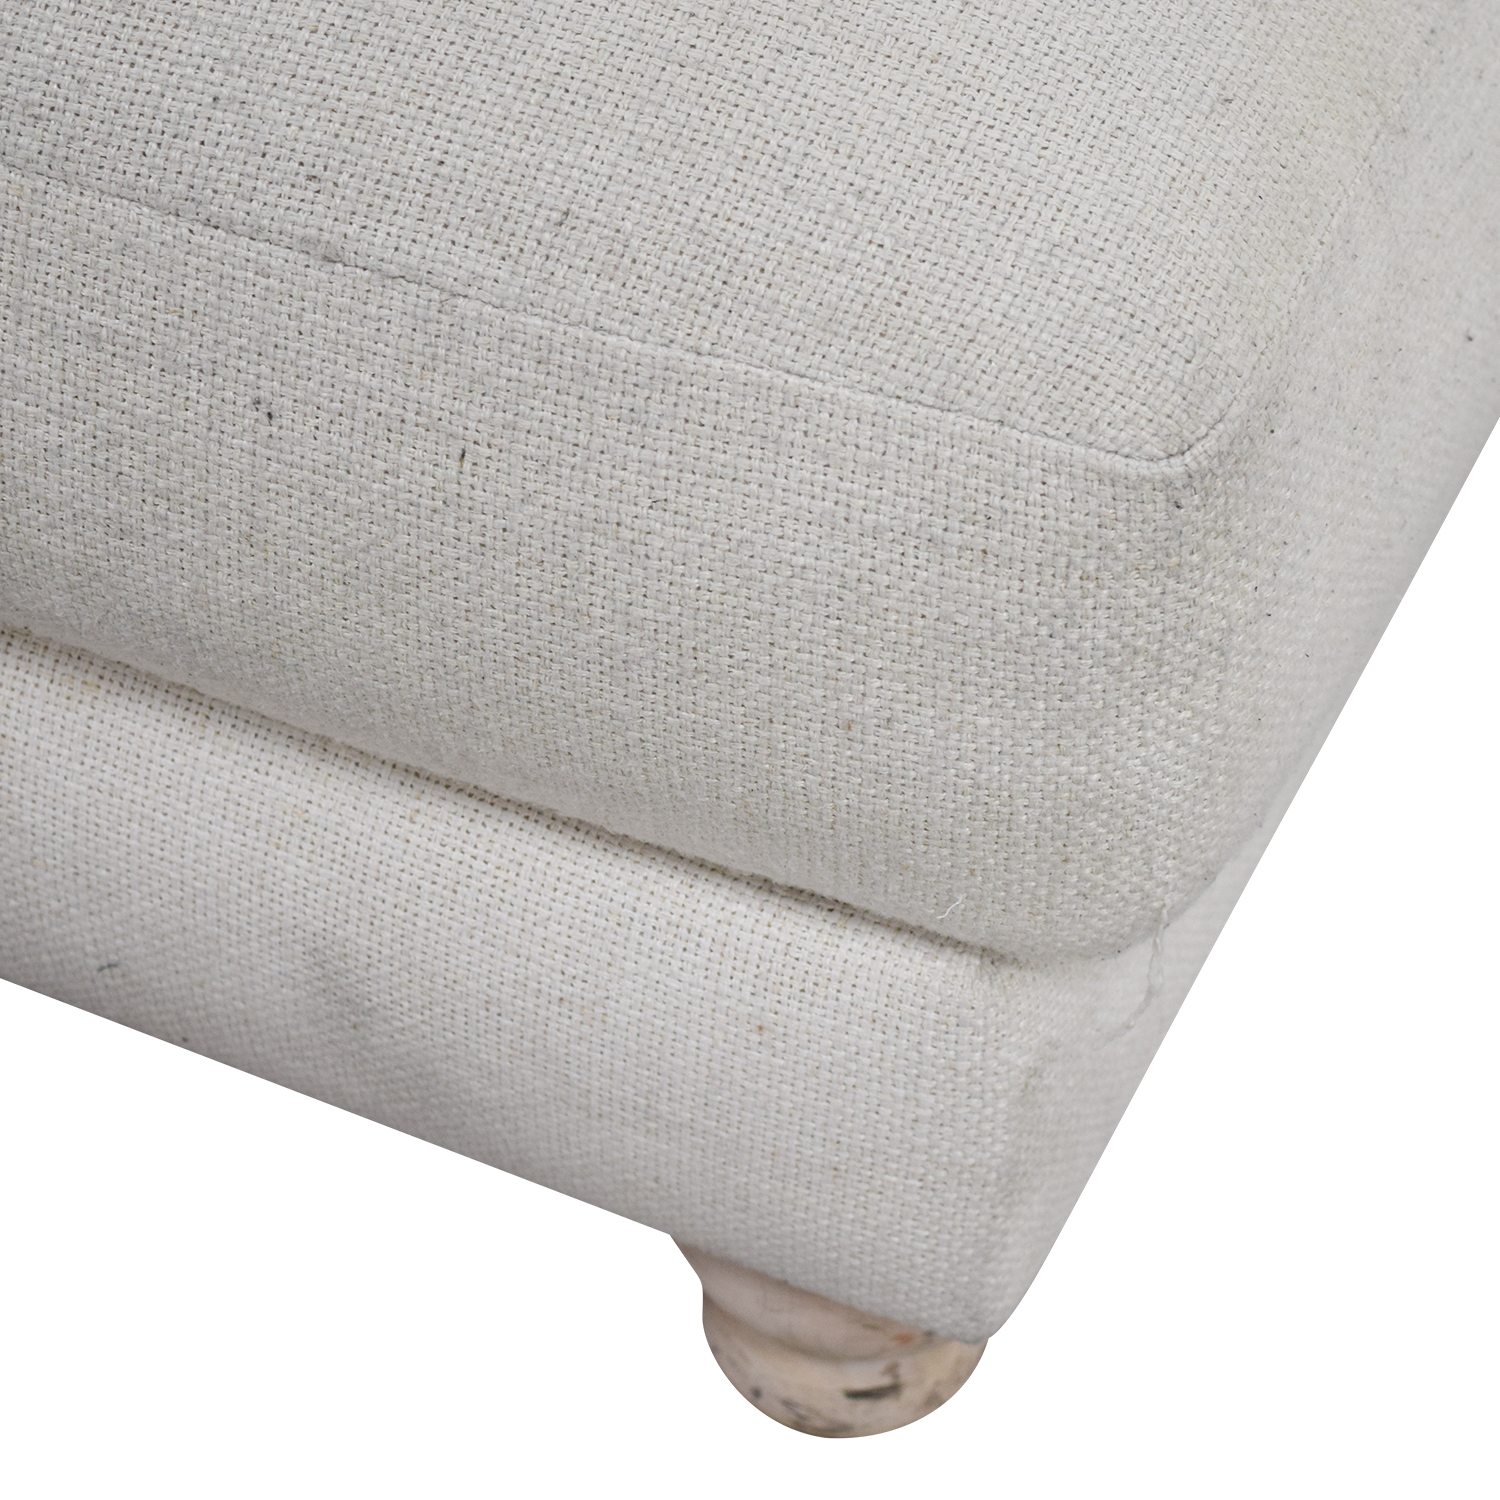 cb2 piazza sofa review reviews sofas and stuff 90 off apartment